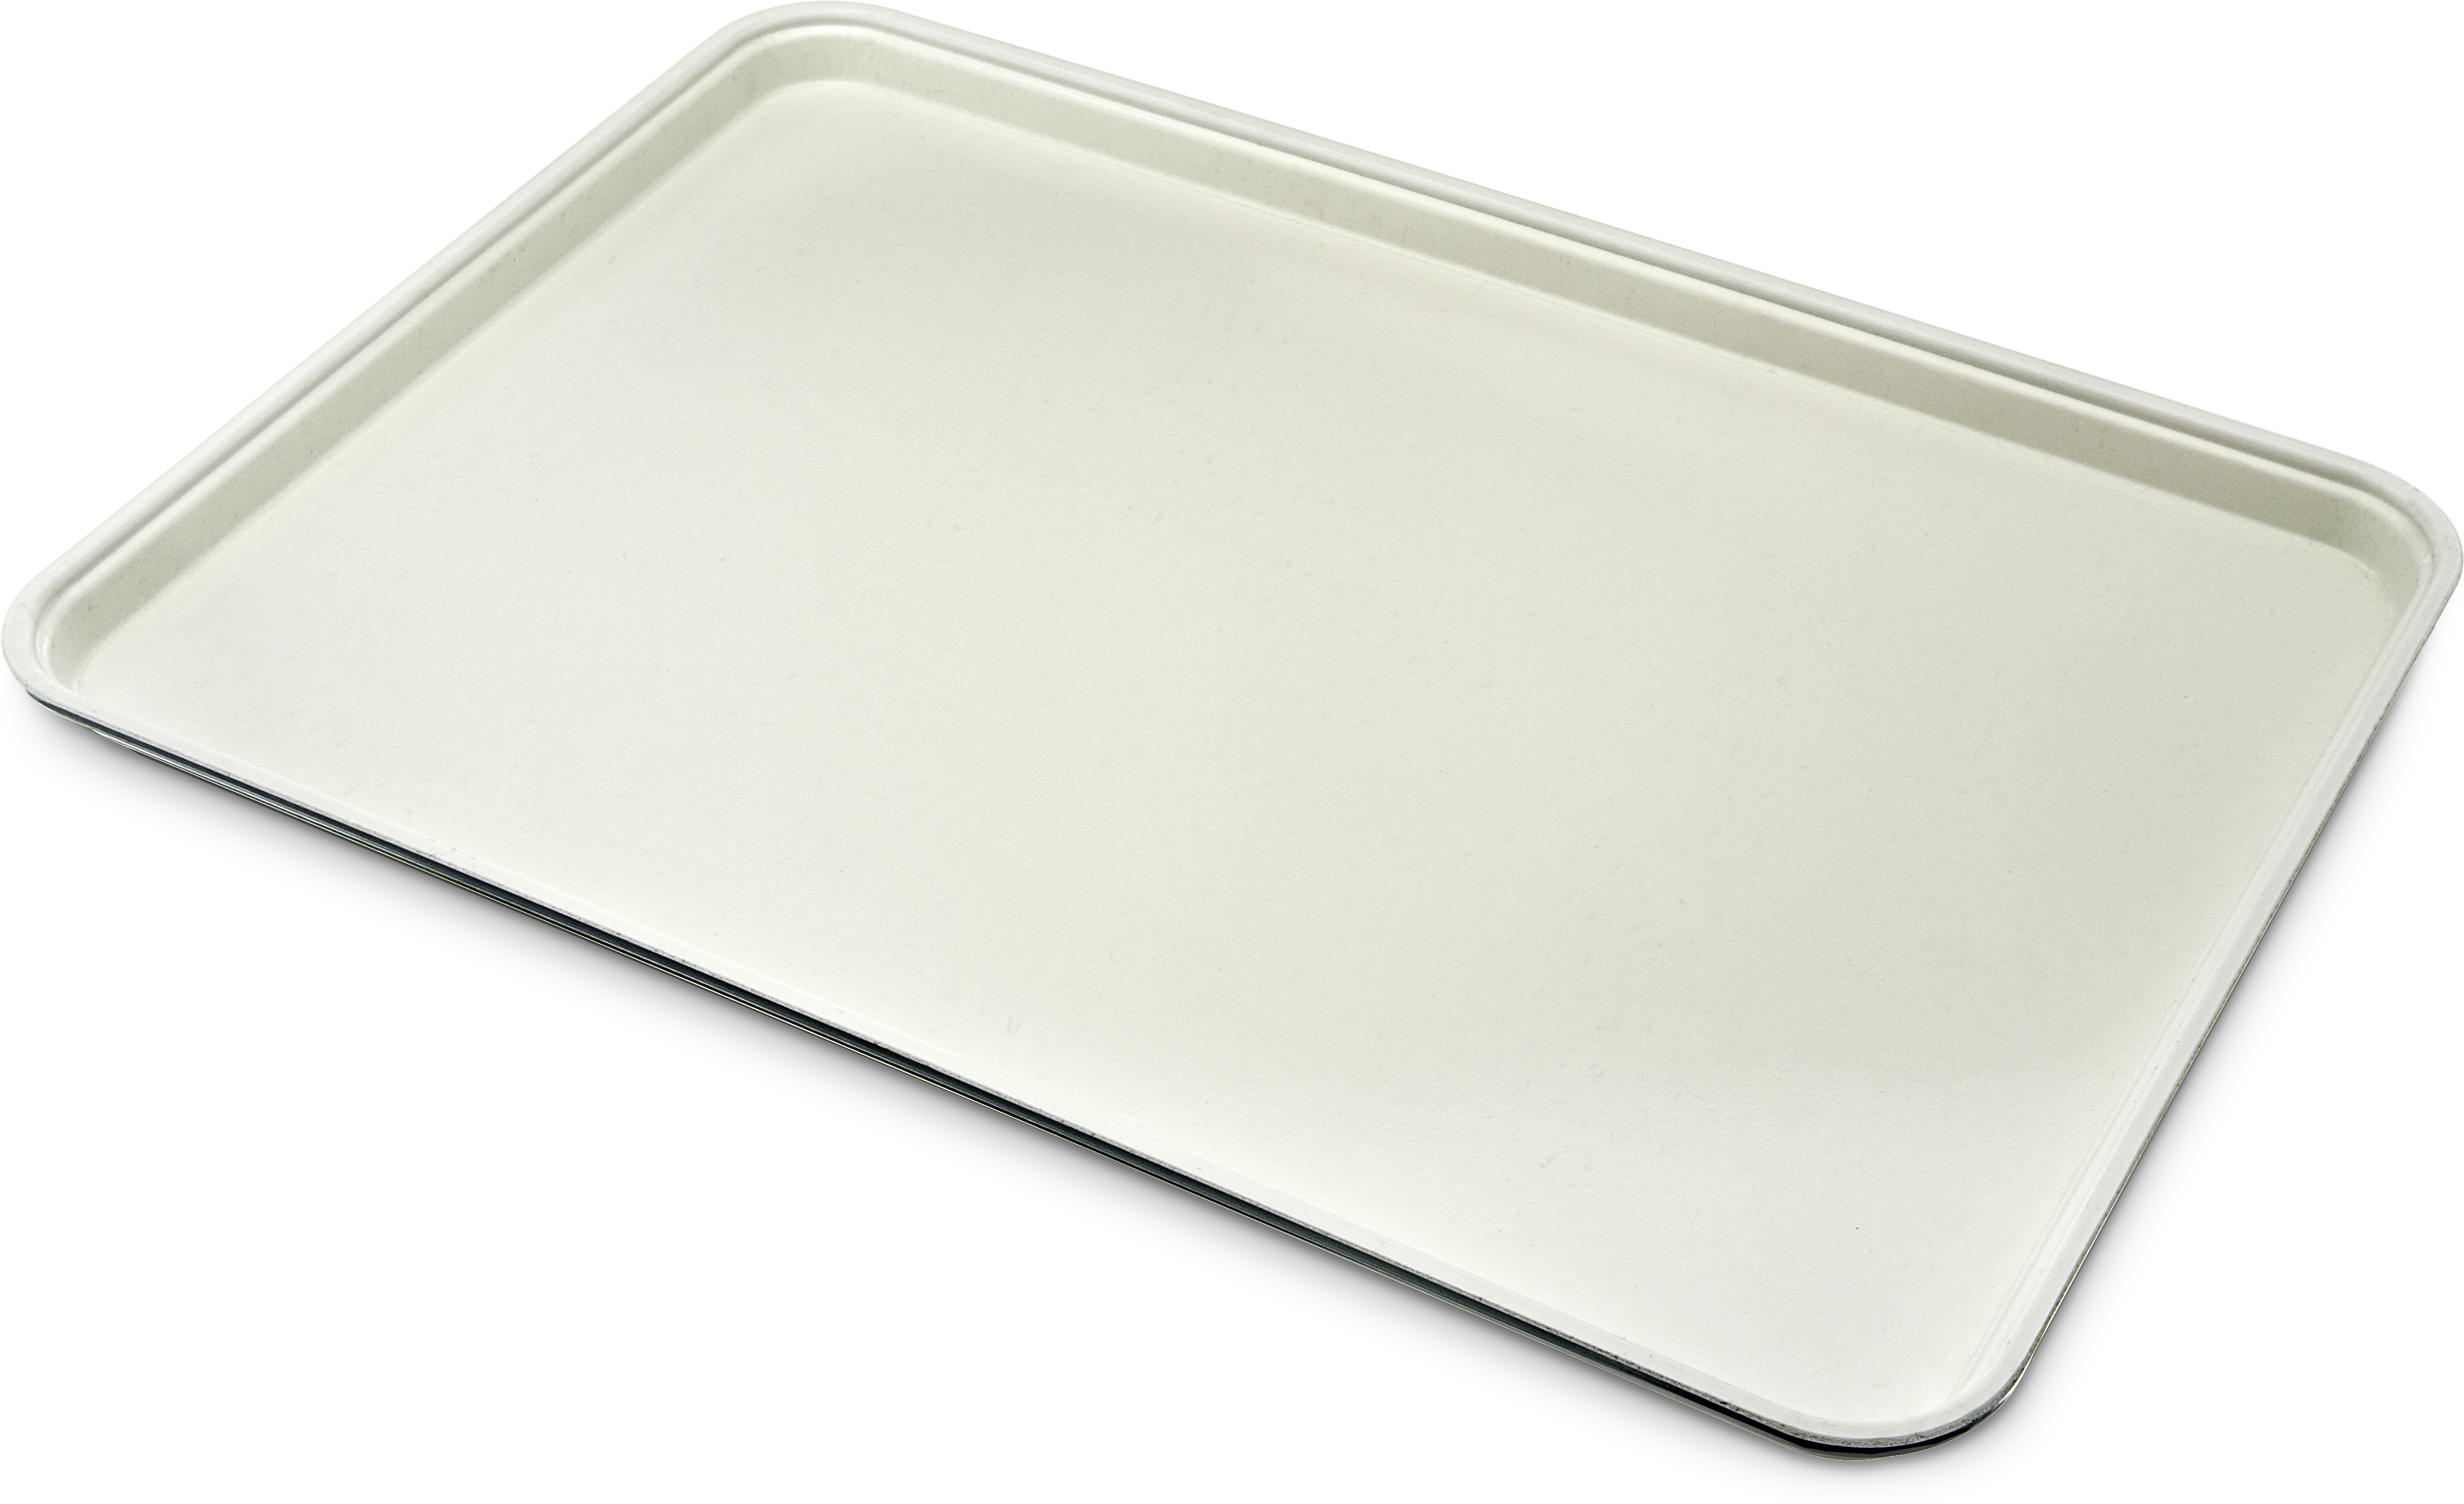 Glasteel Tray Display/Bakery 17.9 x 25.6 - Ivory